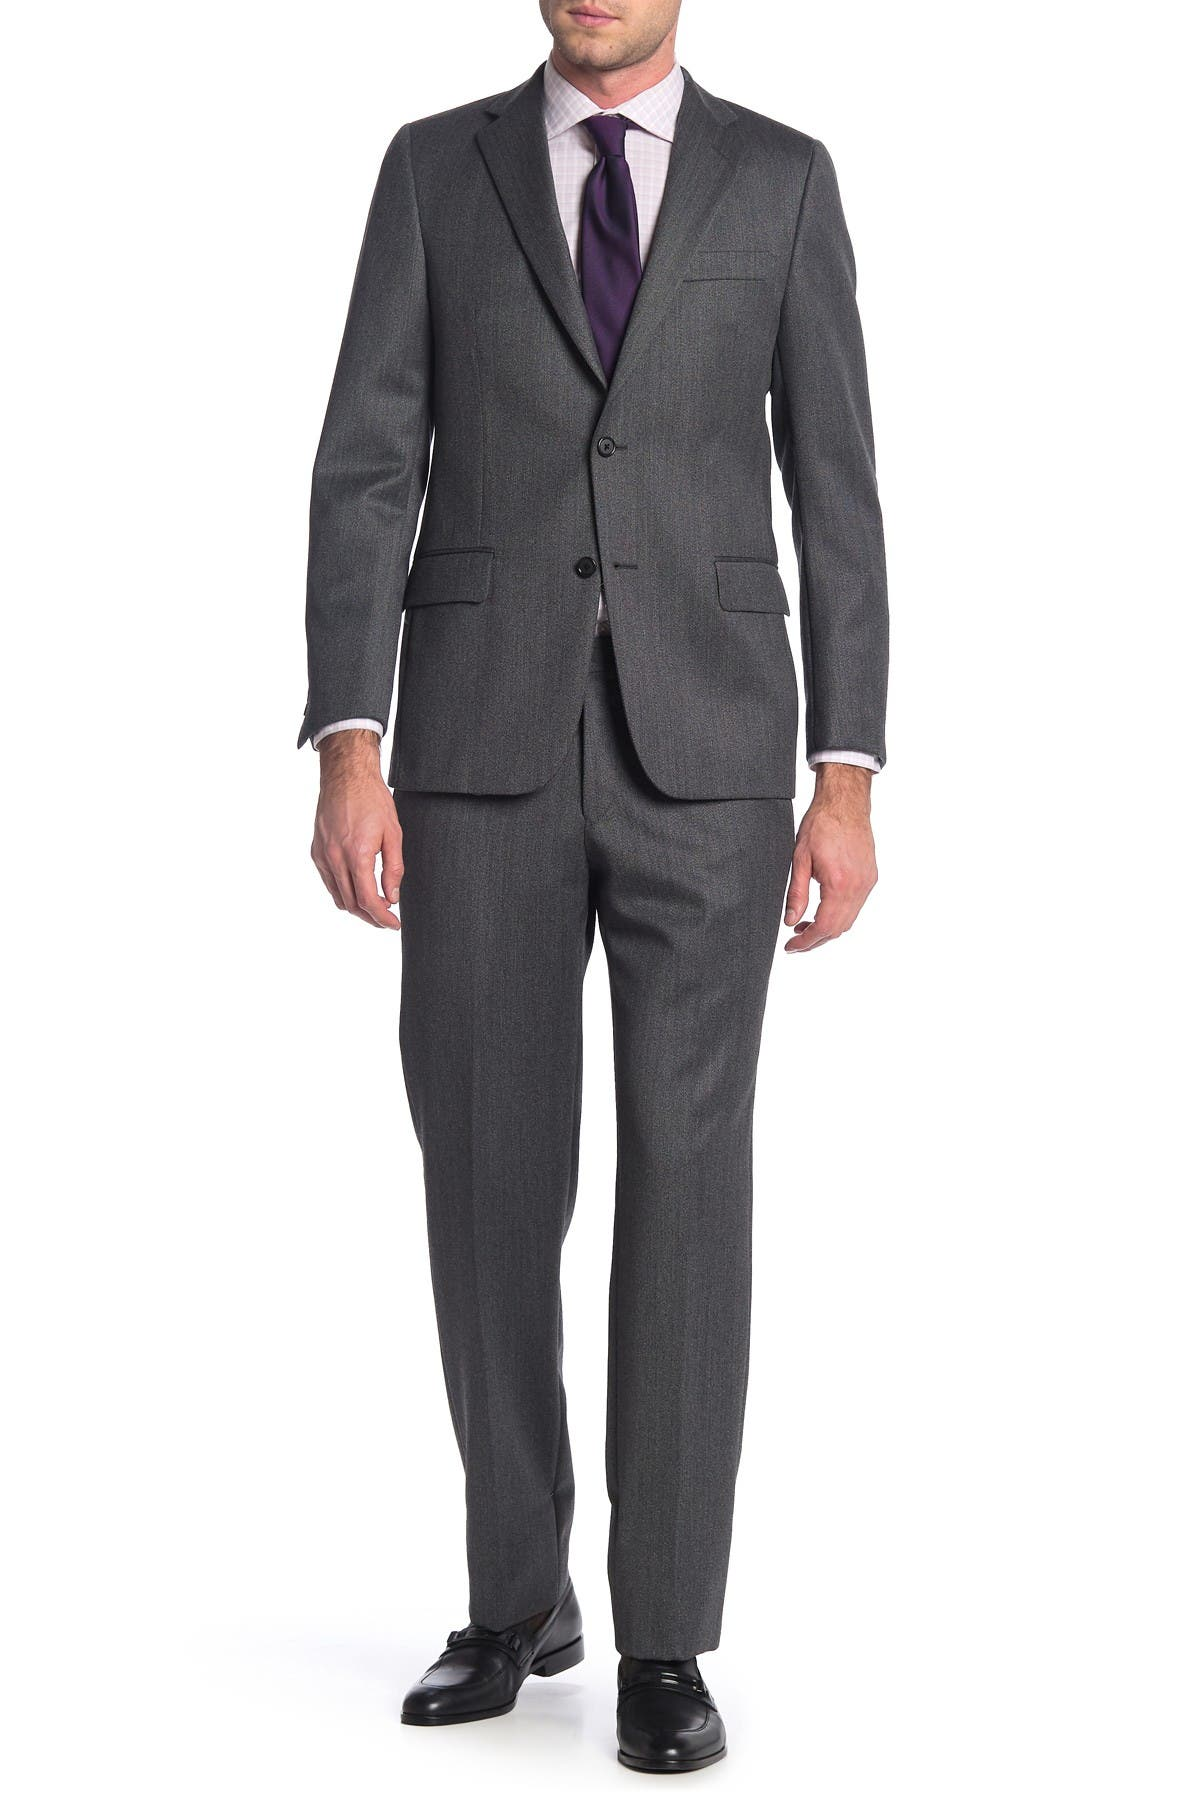 Image of Hickey Freeman Grey Solid Two Button Notch Lapel Wool Classic Fit Suit